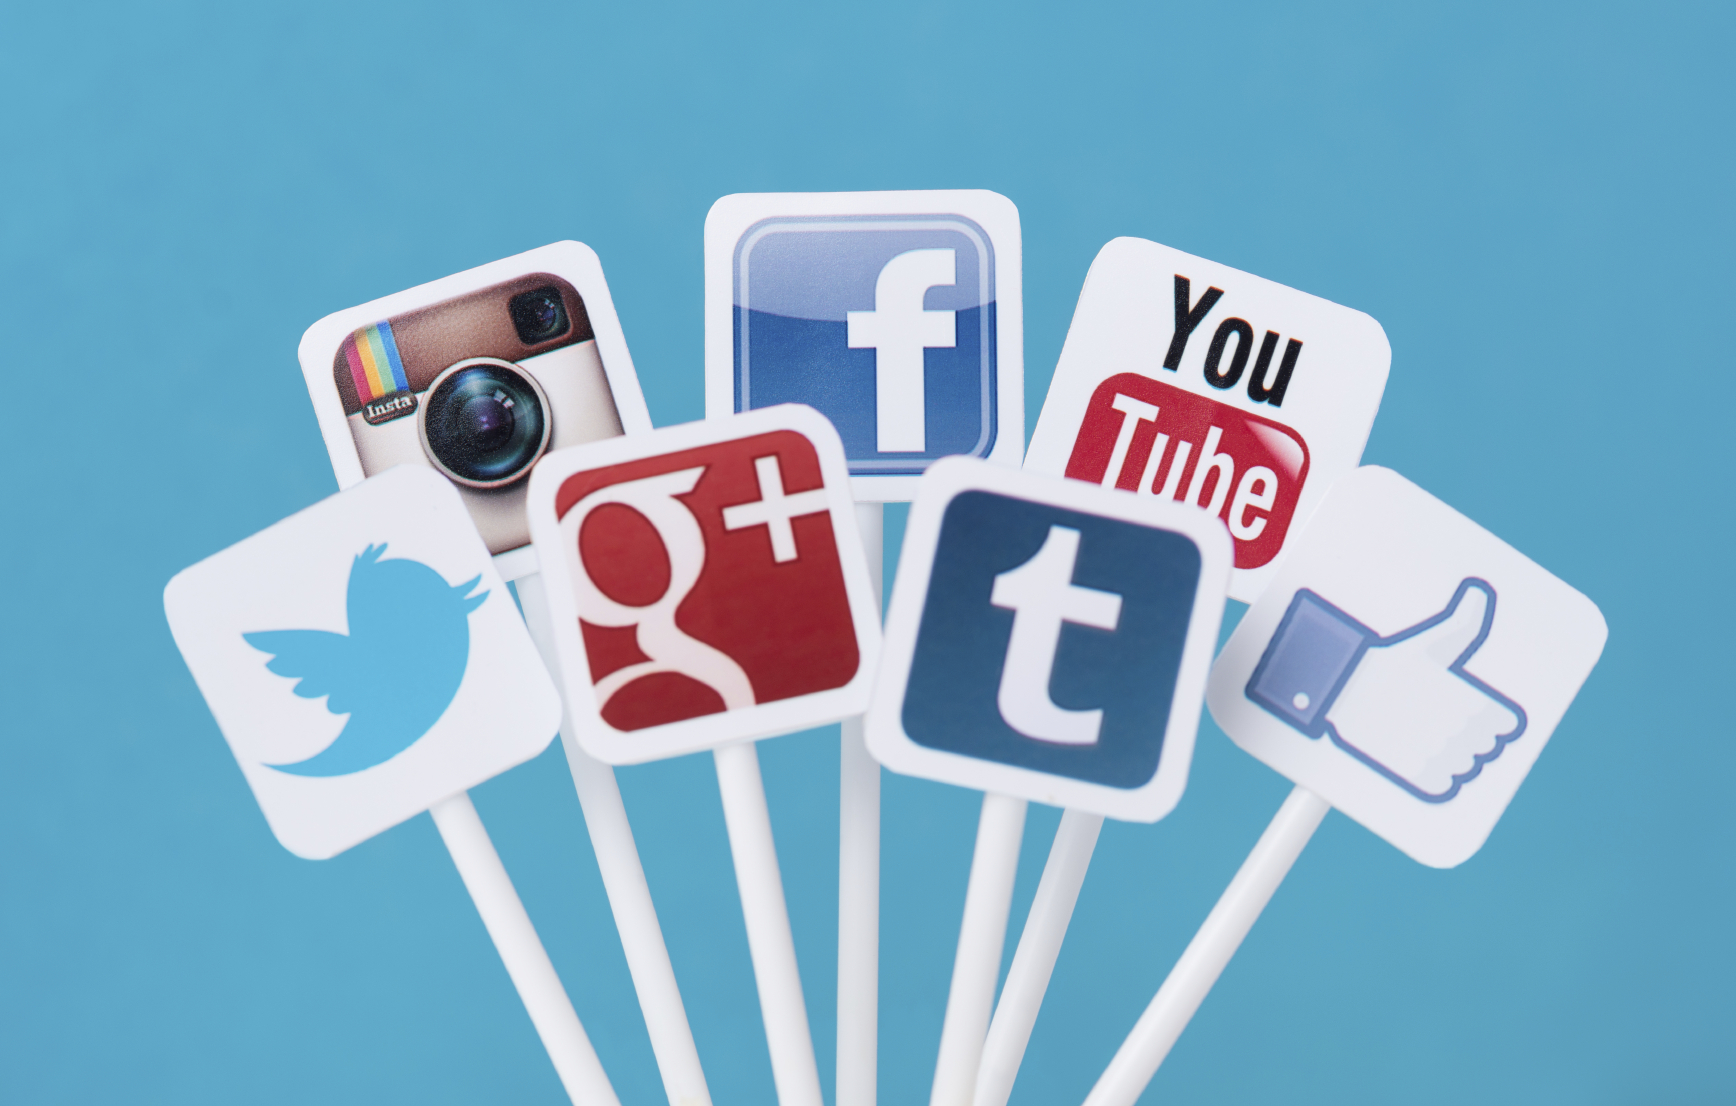 How to Make Sure Your Employees Social Media Etiquette Is Up to Company Standards